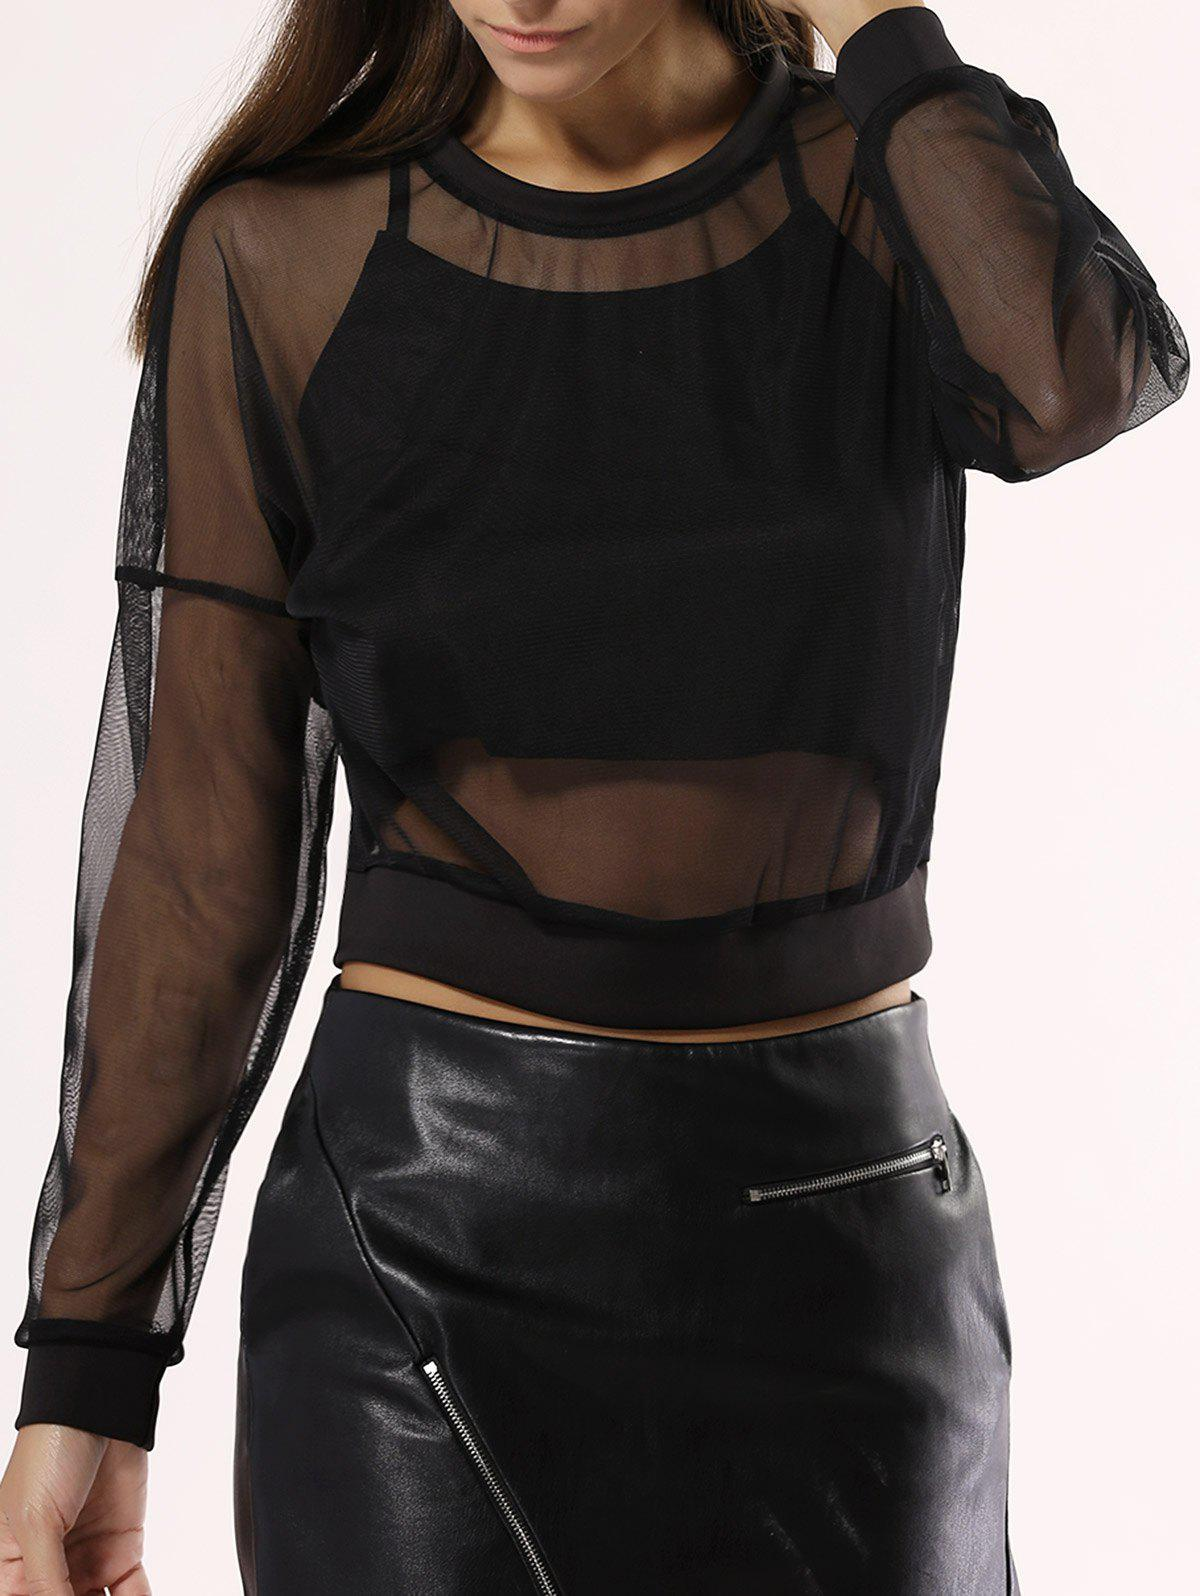 See-Through Mesh Blouse For Women